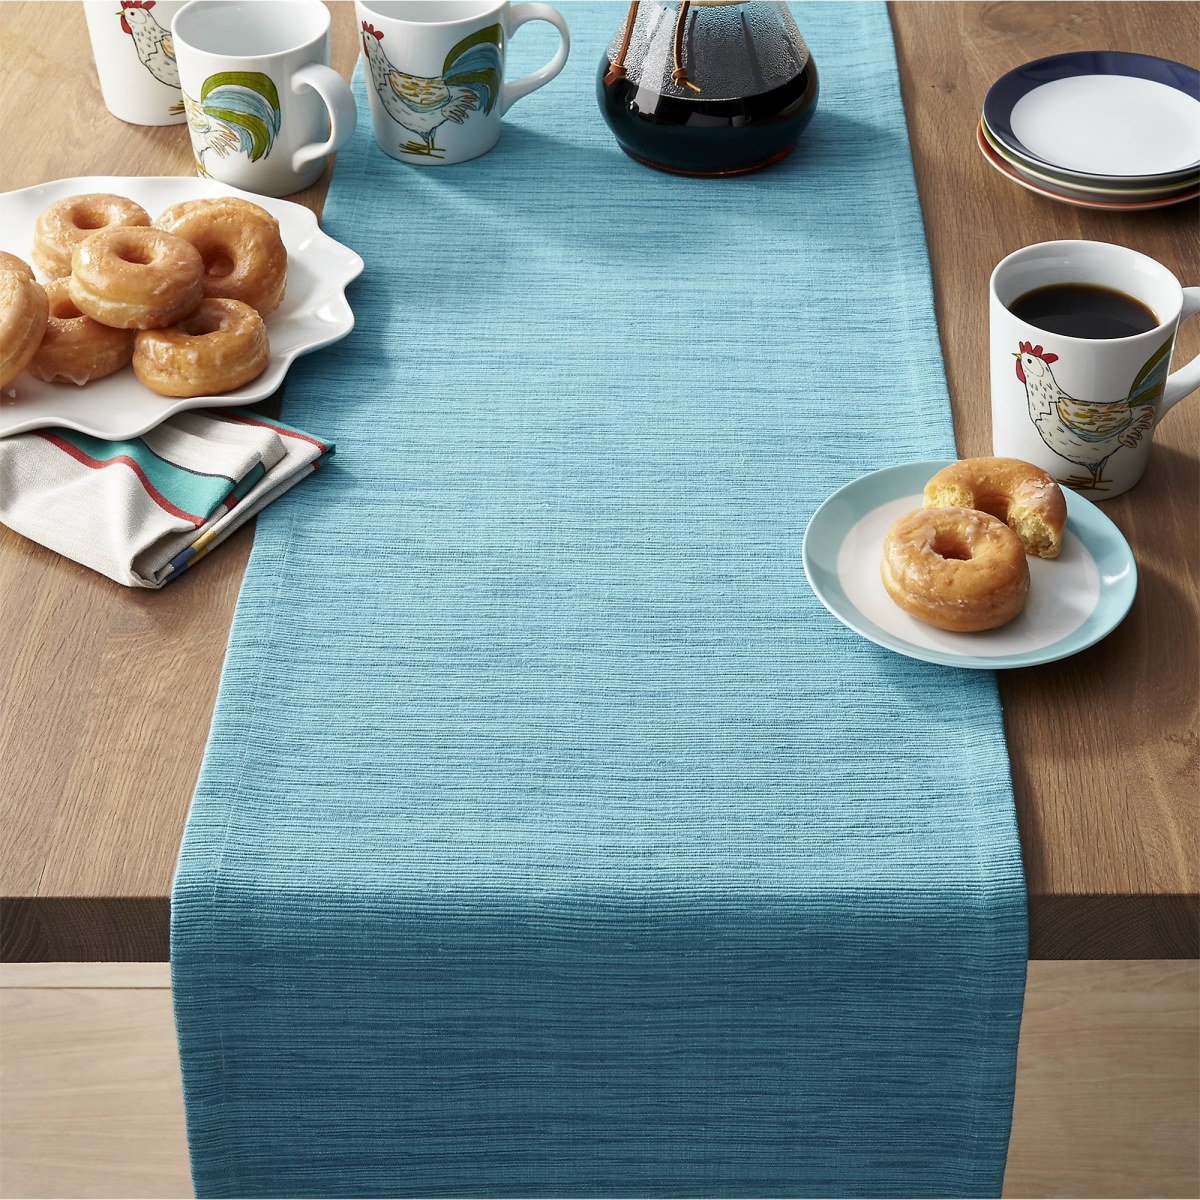 Aqua table runner from Crate & Barrel